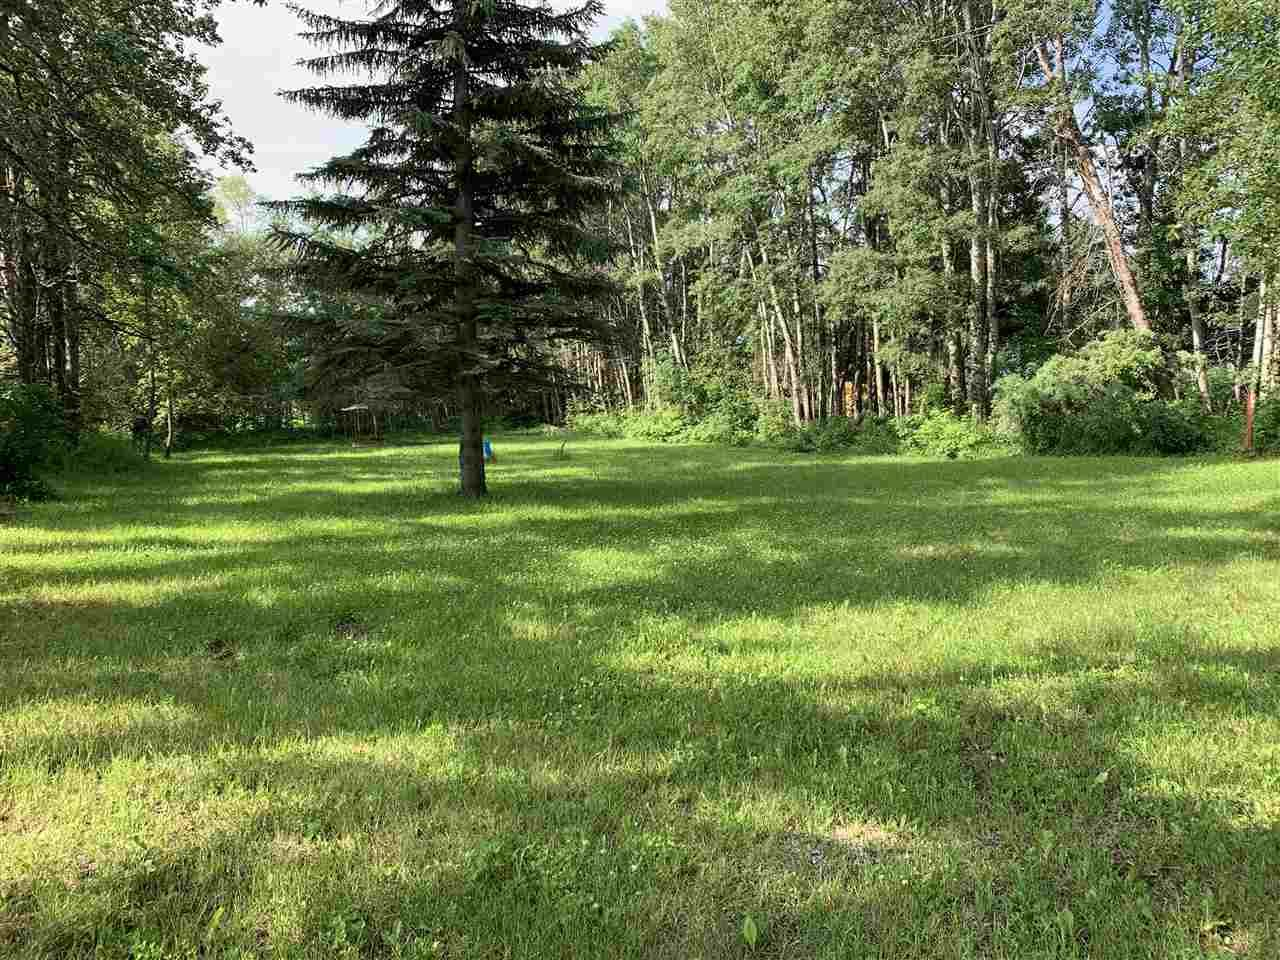 Main Photo: #105 54500 Lac Ste Anne Tr.: Rural Sturgeon County Rural Land/Vacant Lot for sale : MLS®# E4227654